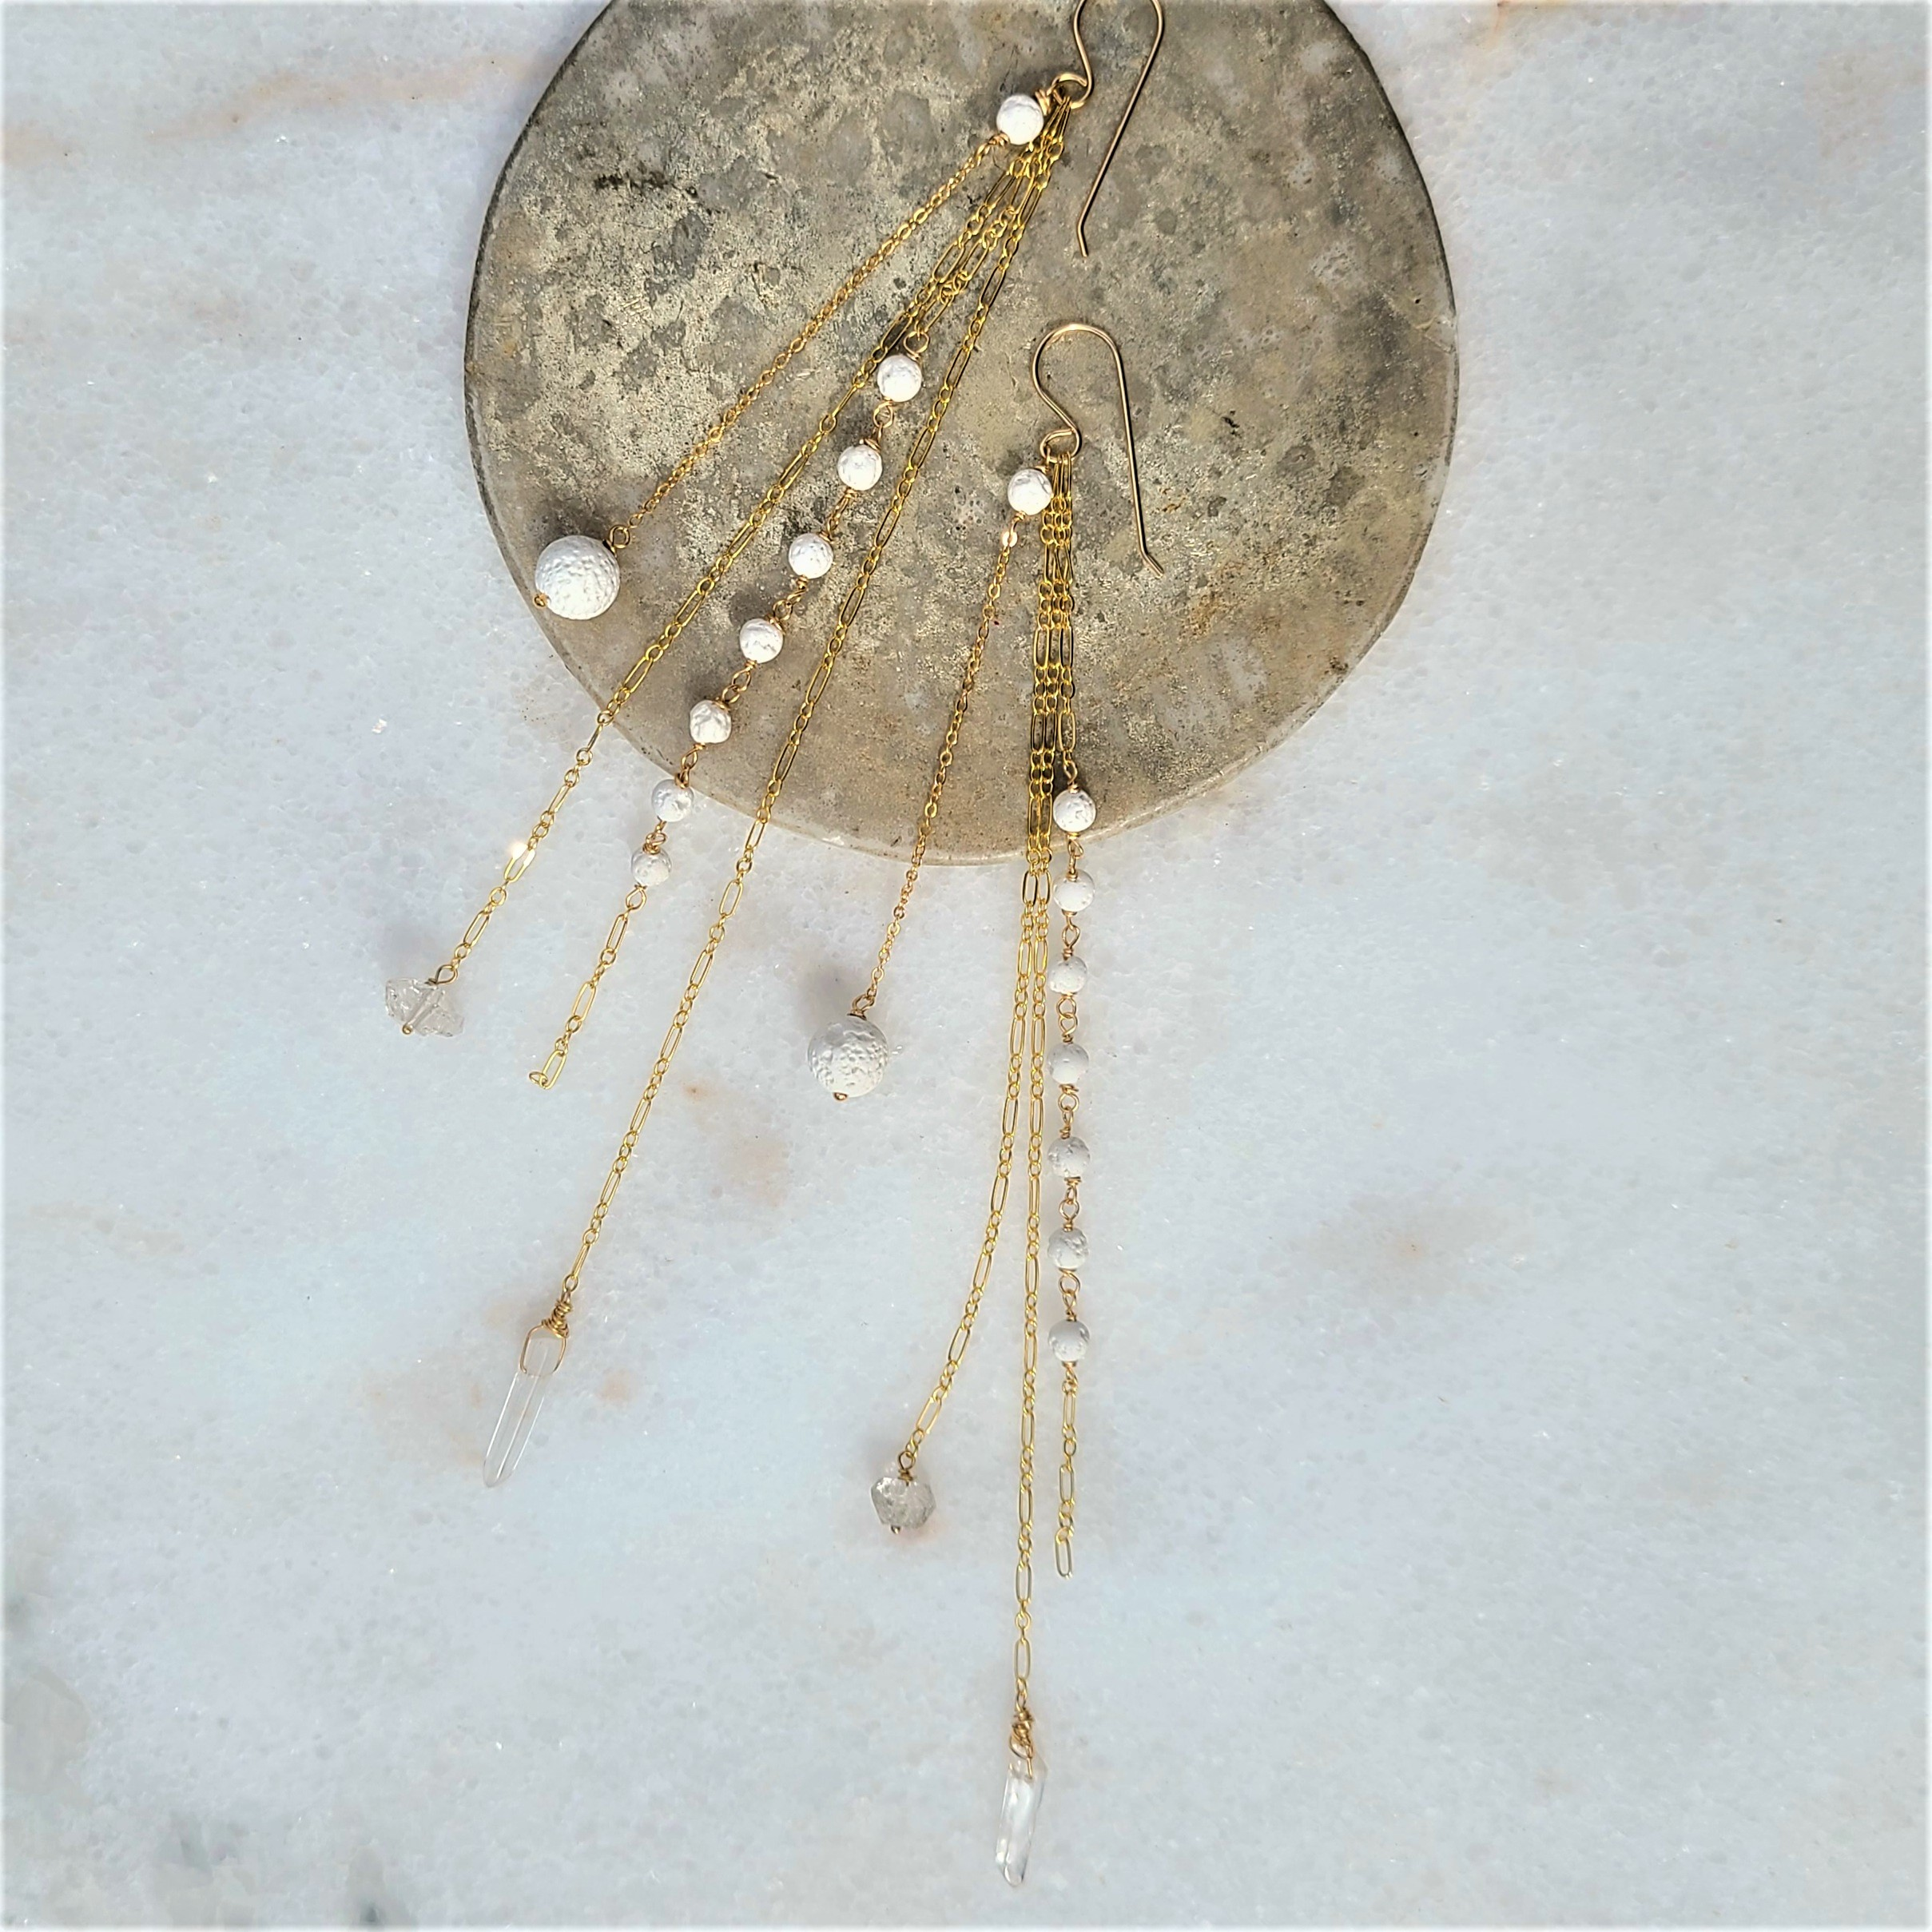 Anuket x James & Jezebelle Nile Earrings demi-fine gold drop earrings with white lava rock stones and herkimer diamonds  for diffusing fragrance jewelry